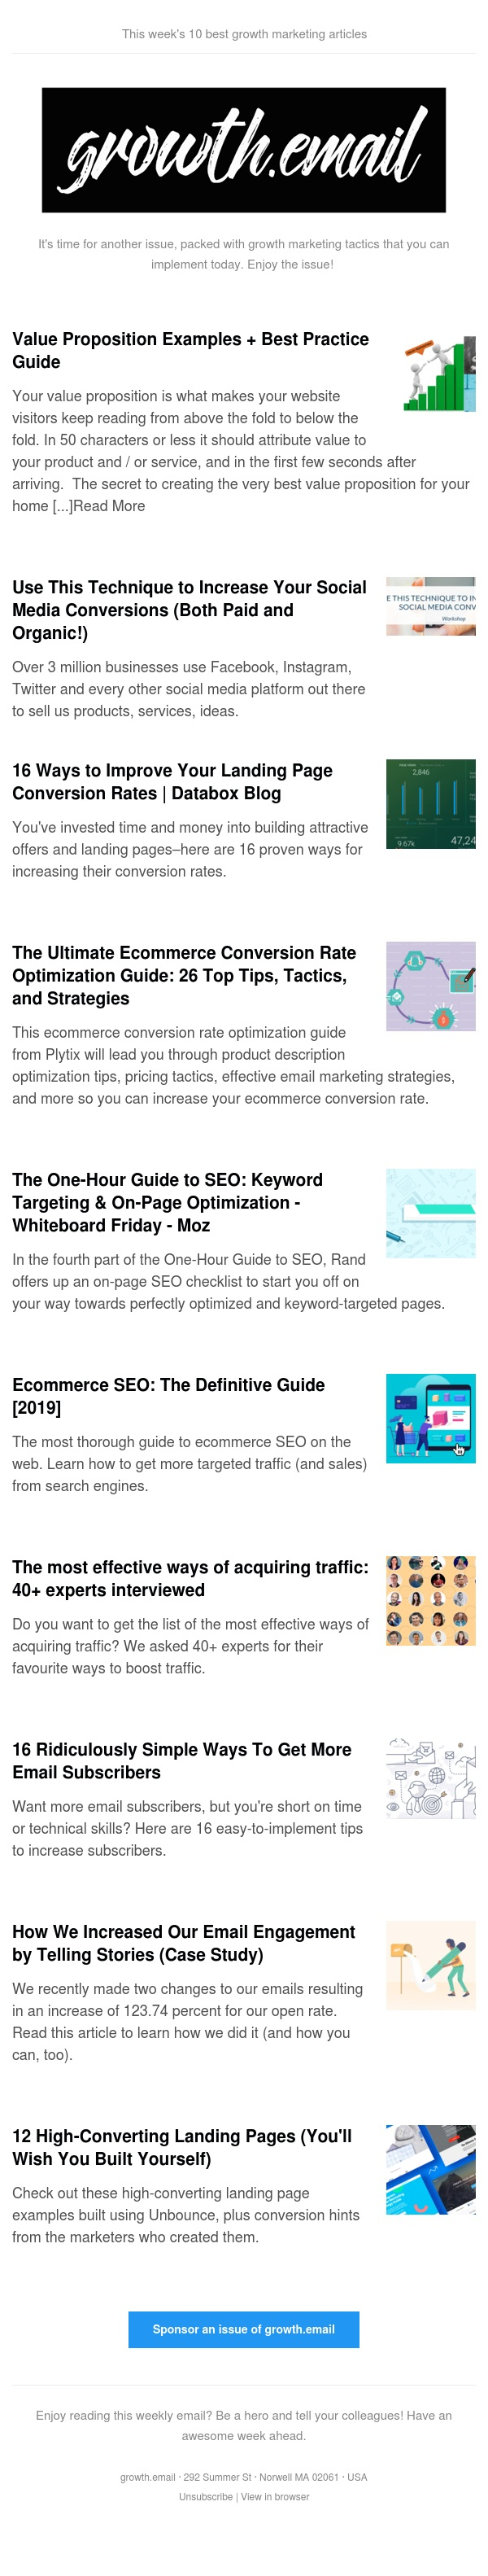 growth.email #91 Increase Social Media Conversions | Ultimate Conversion Rate Optimization Guide | Keyword Targeting | Ecommerce SEO | Email Engagement Strategy